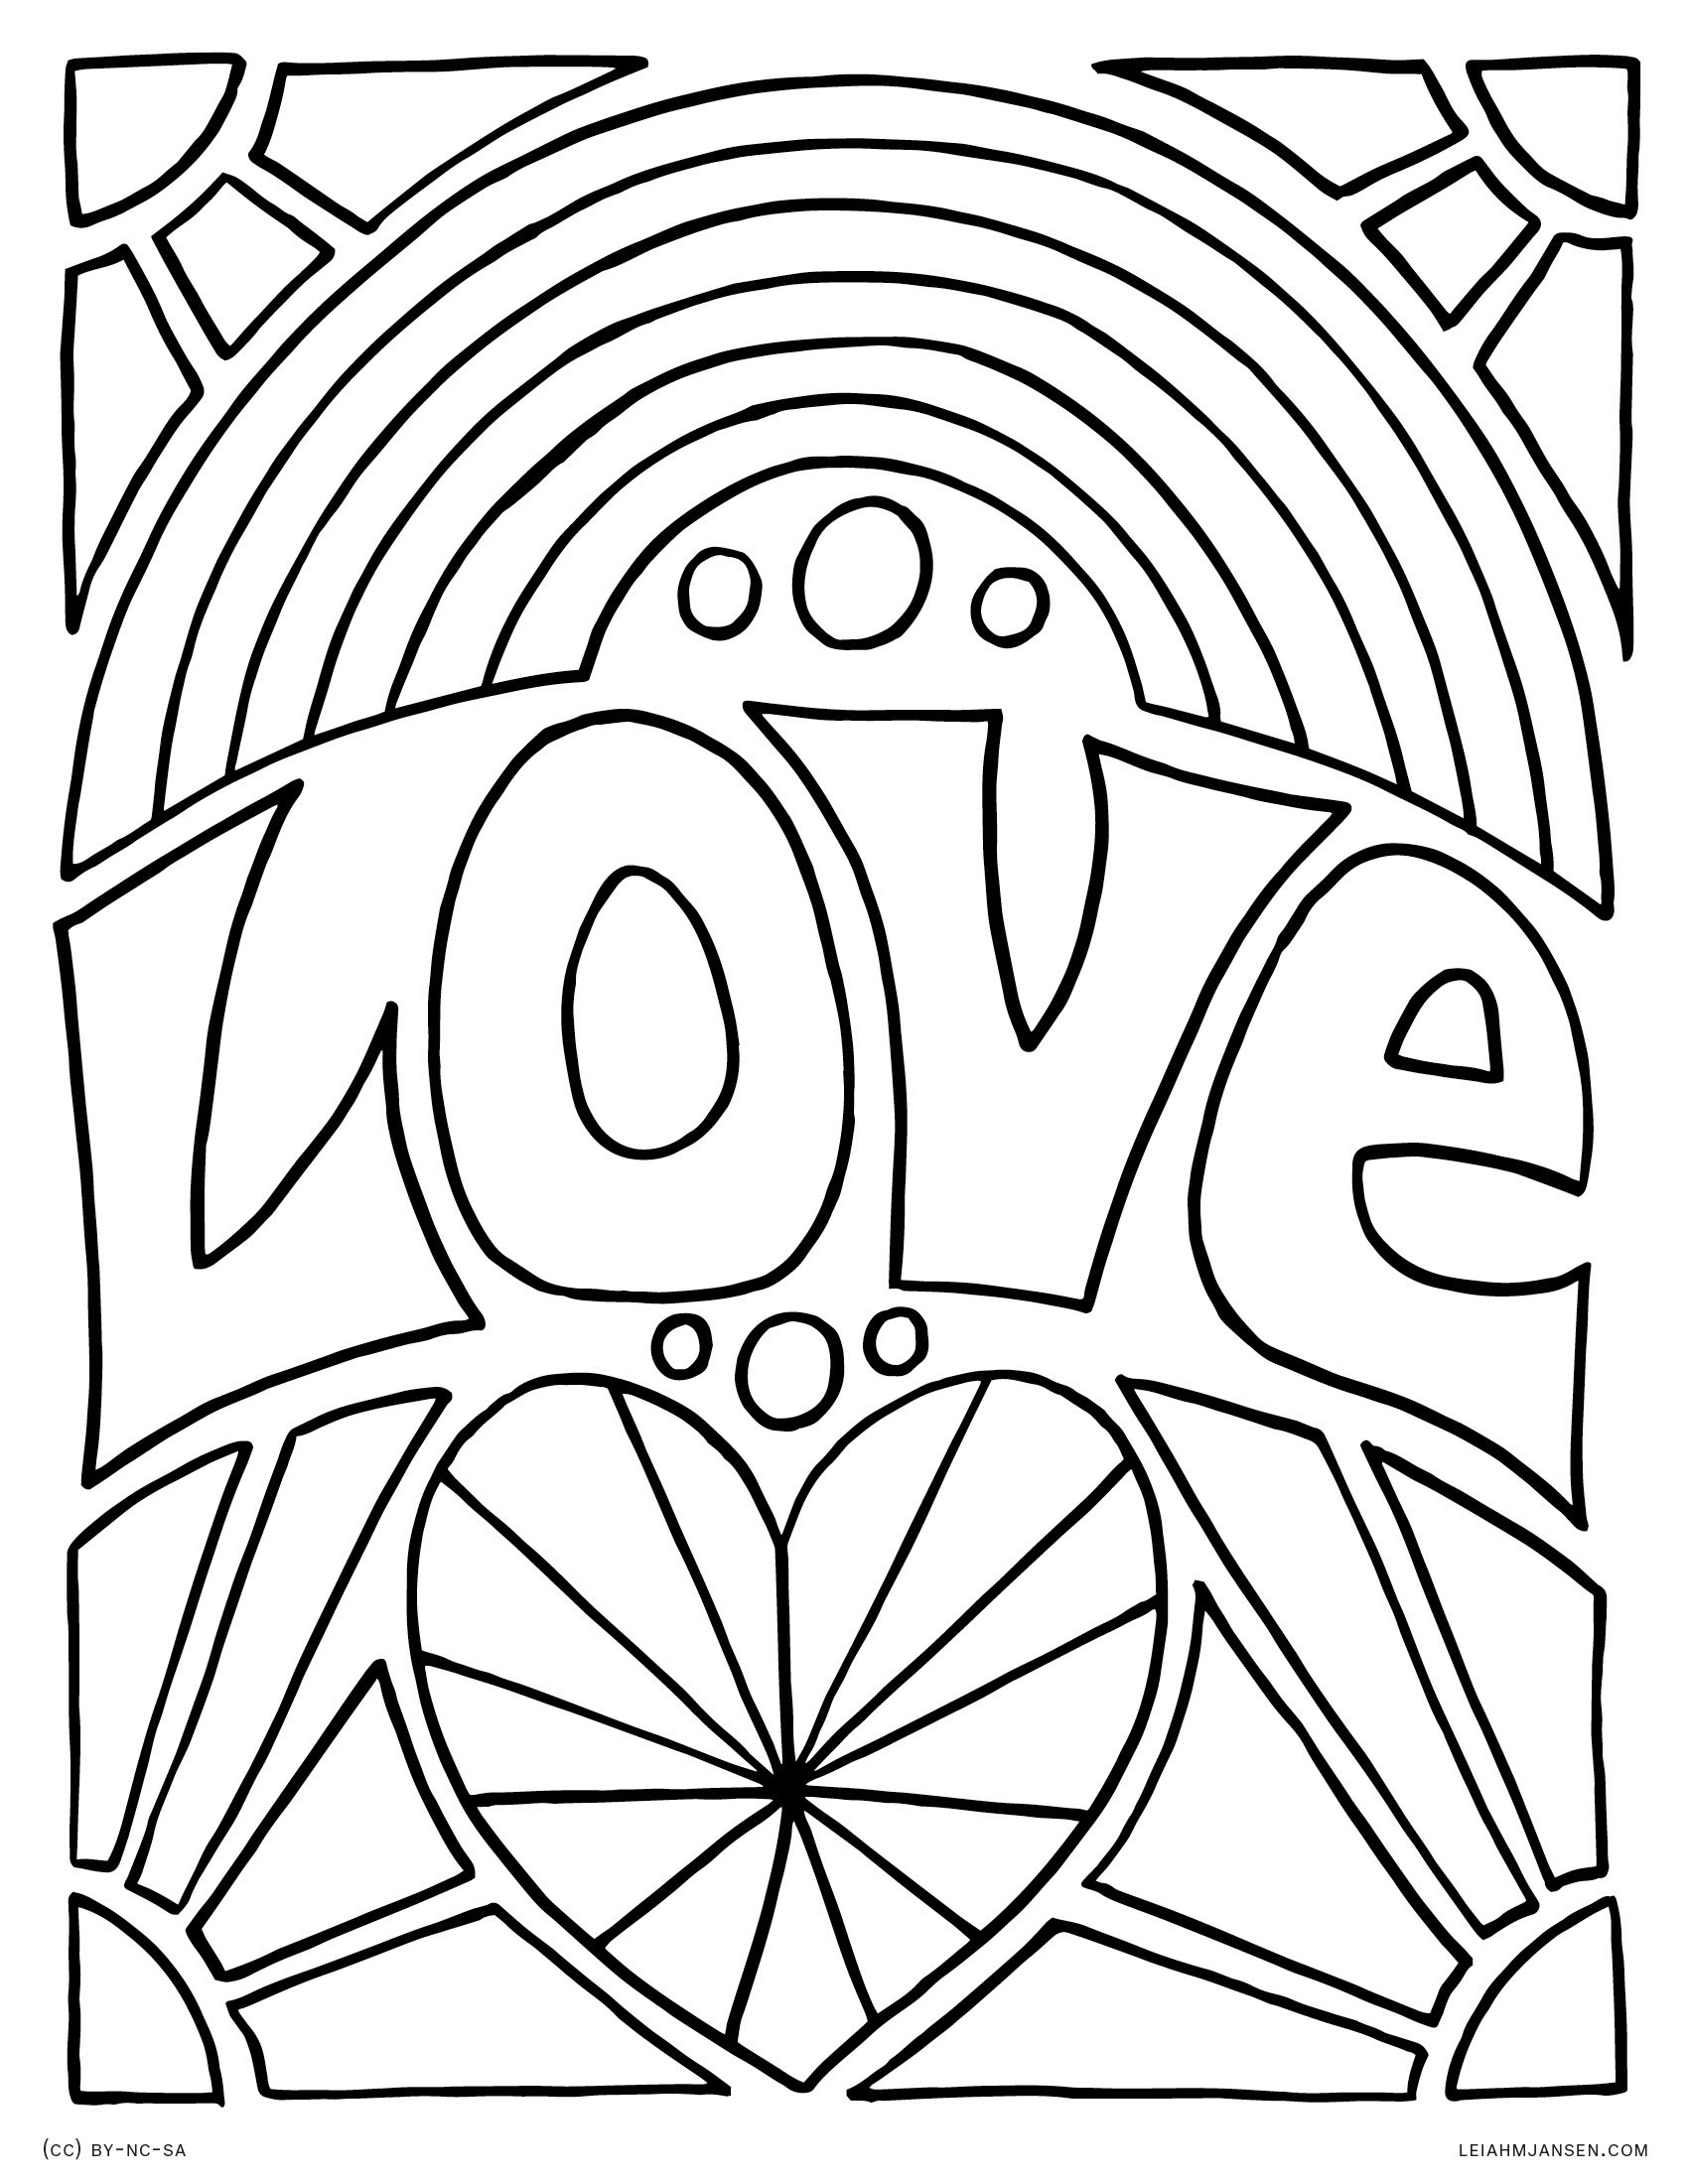 Printable Coloring Sheets Free  Coloring Pages